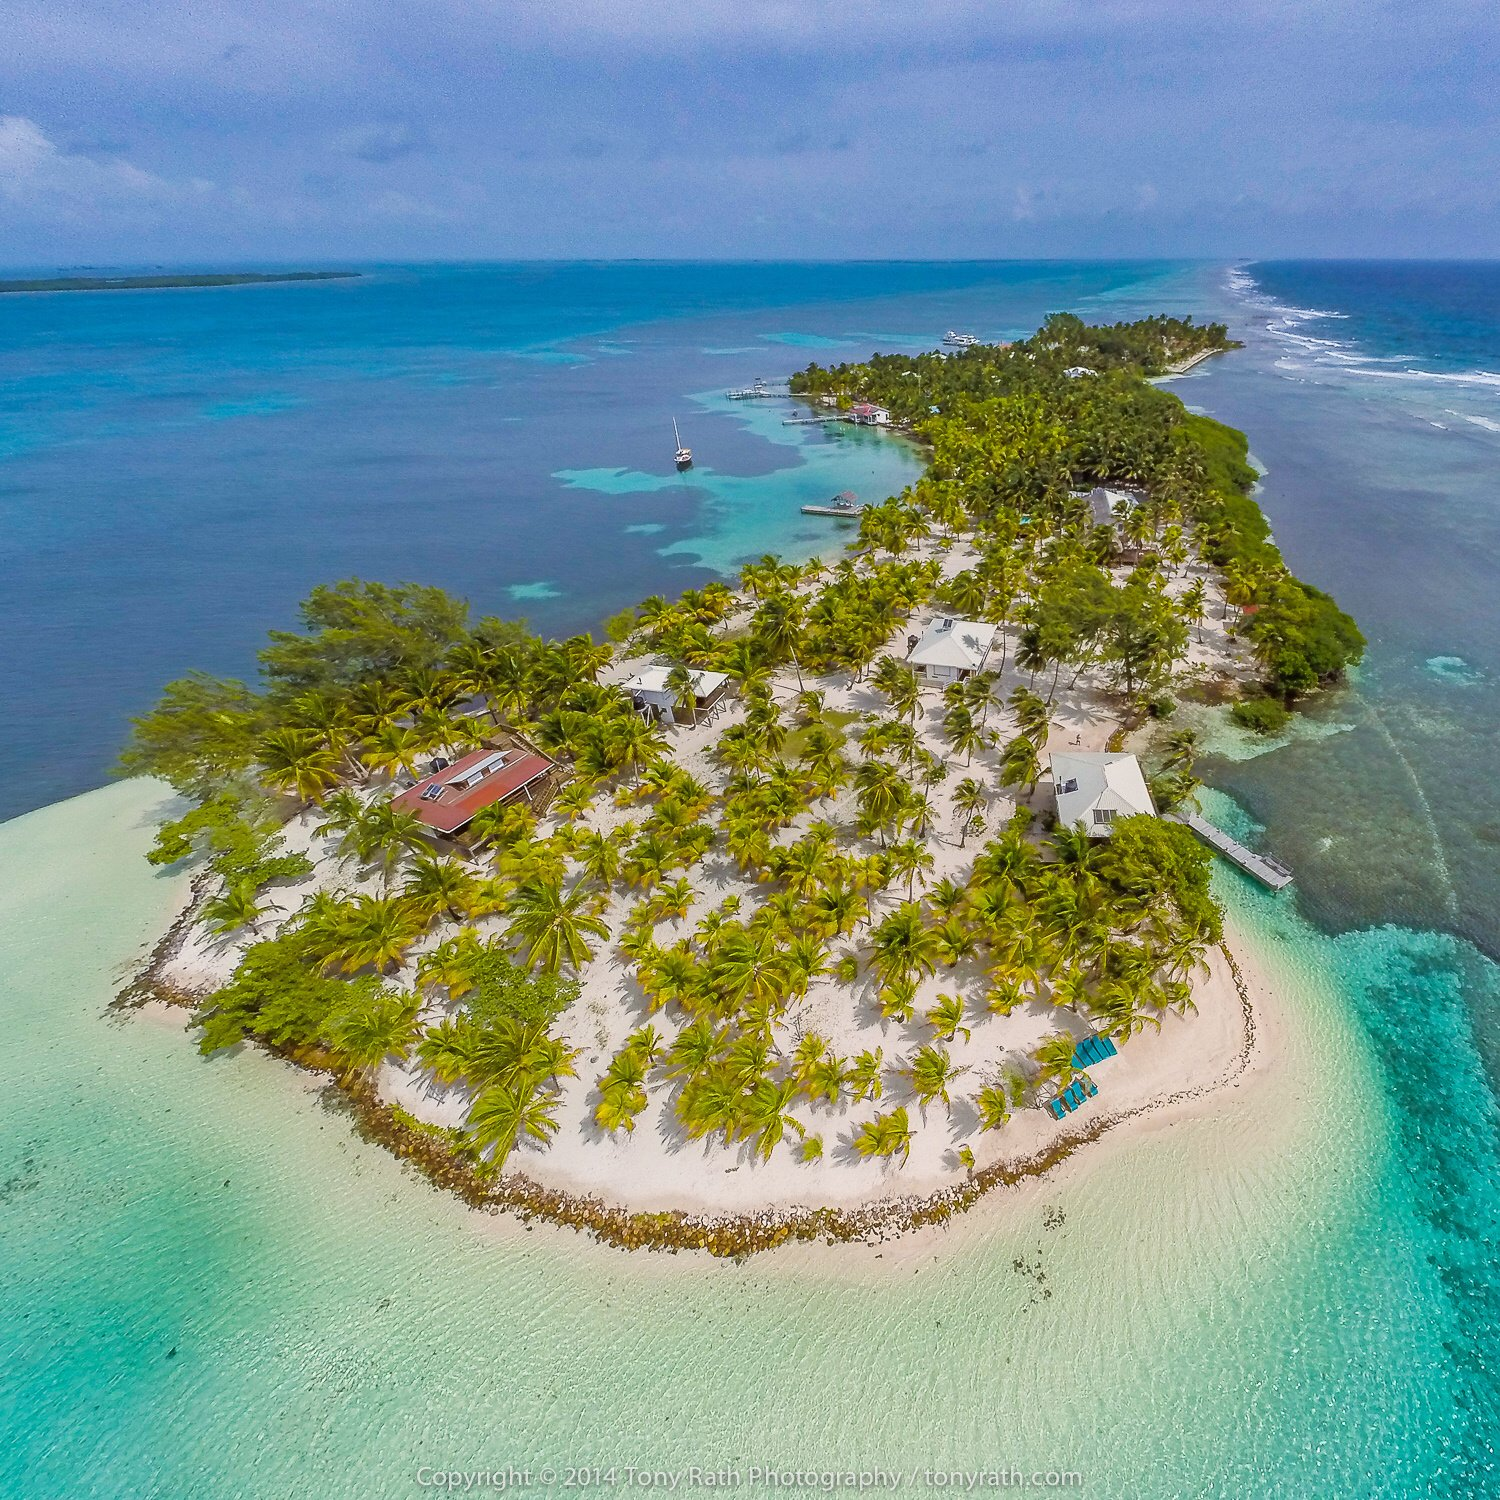 Belize Beaches: Here Are 6 Islands In Belize That You Can't Afford To Miss